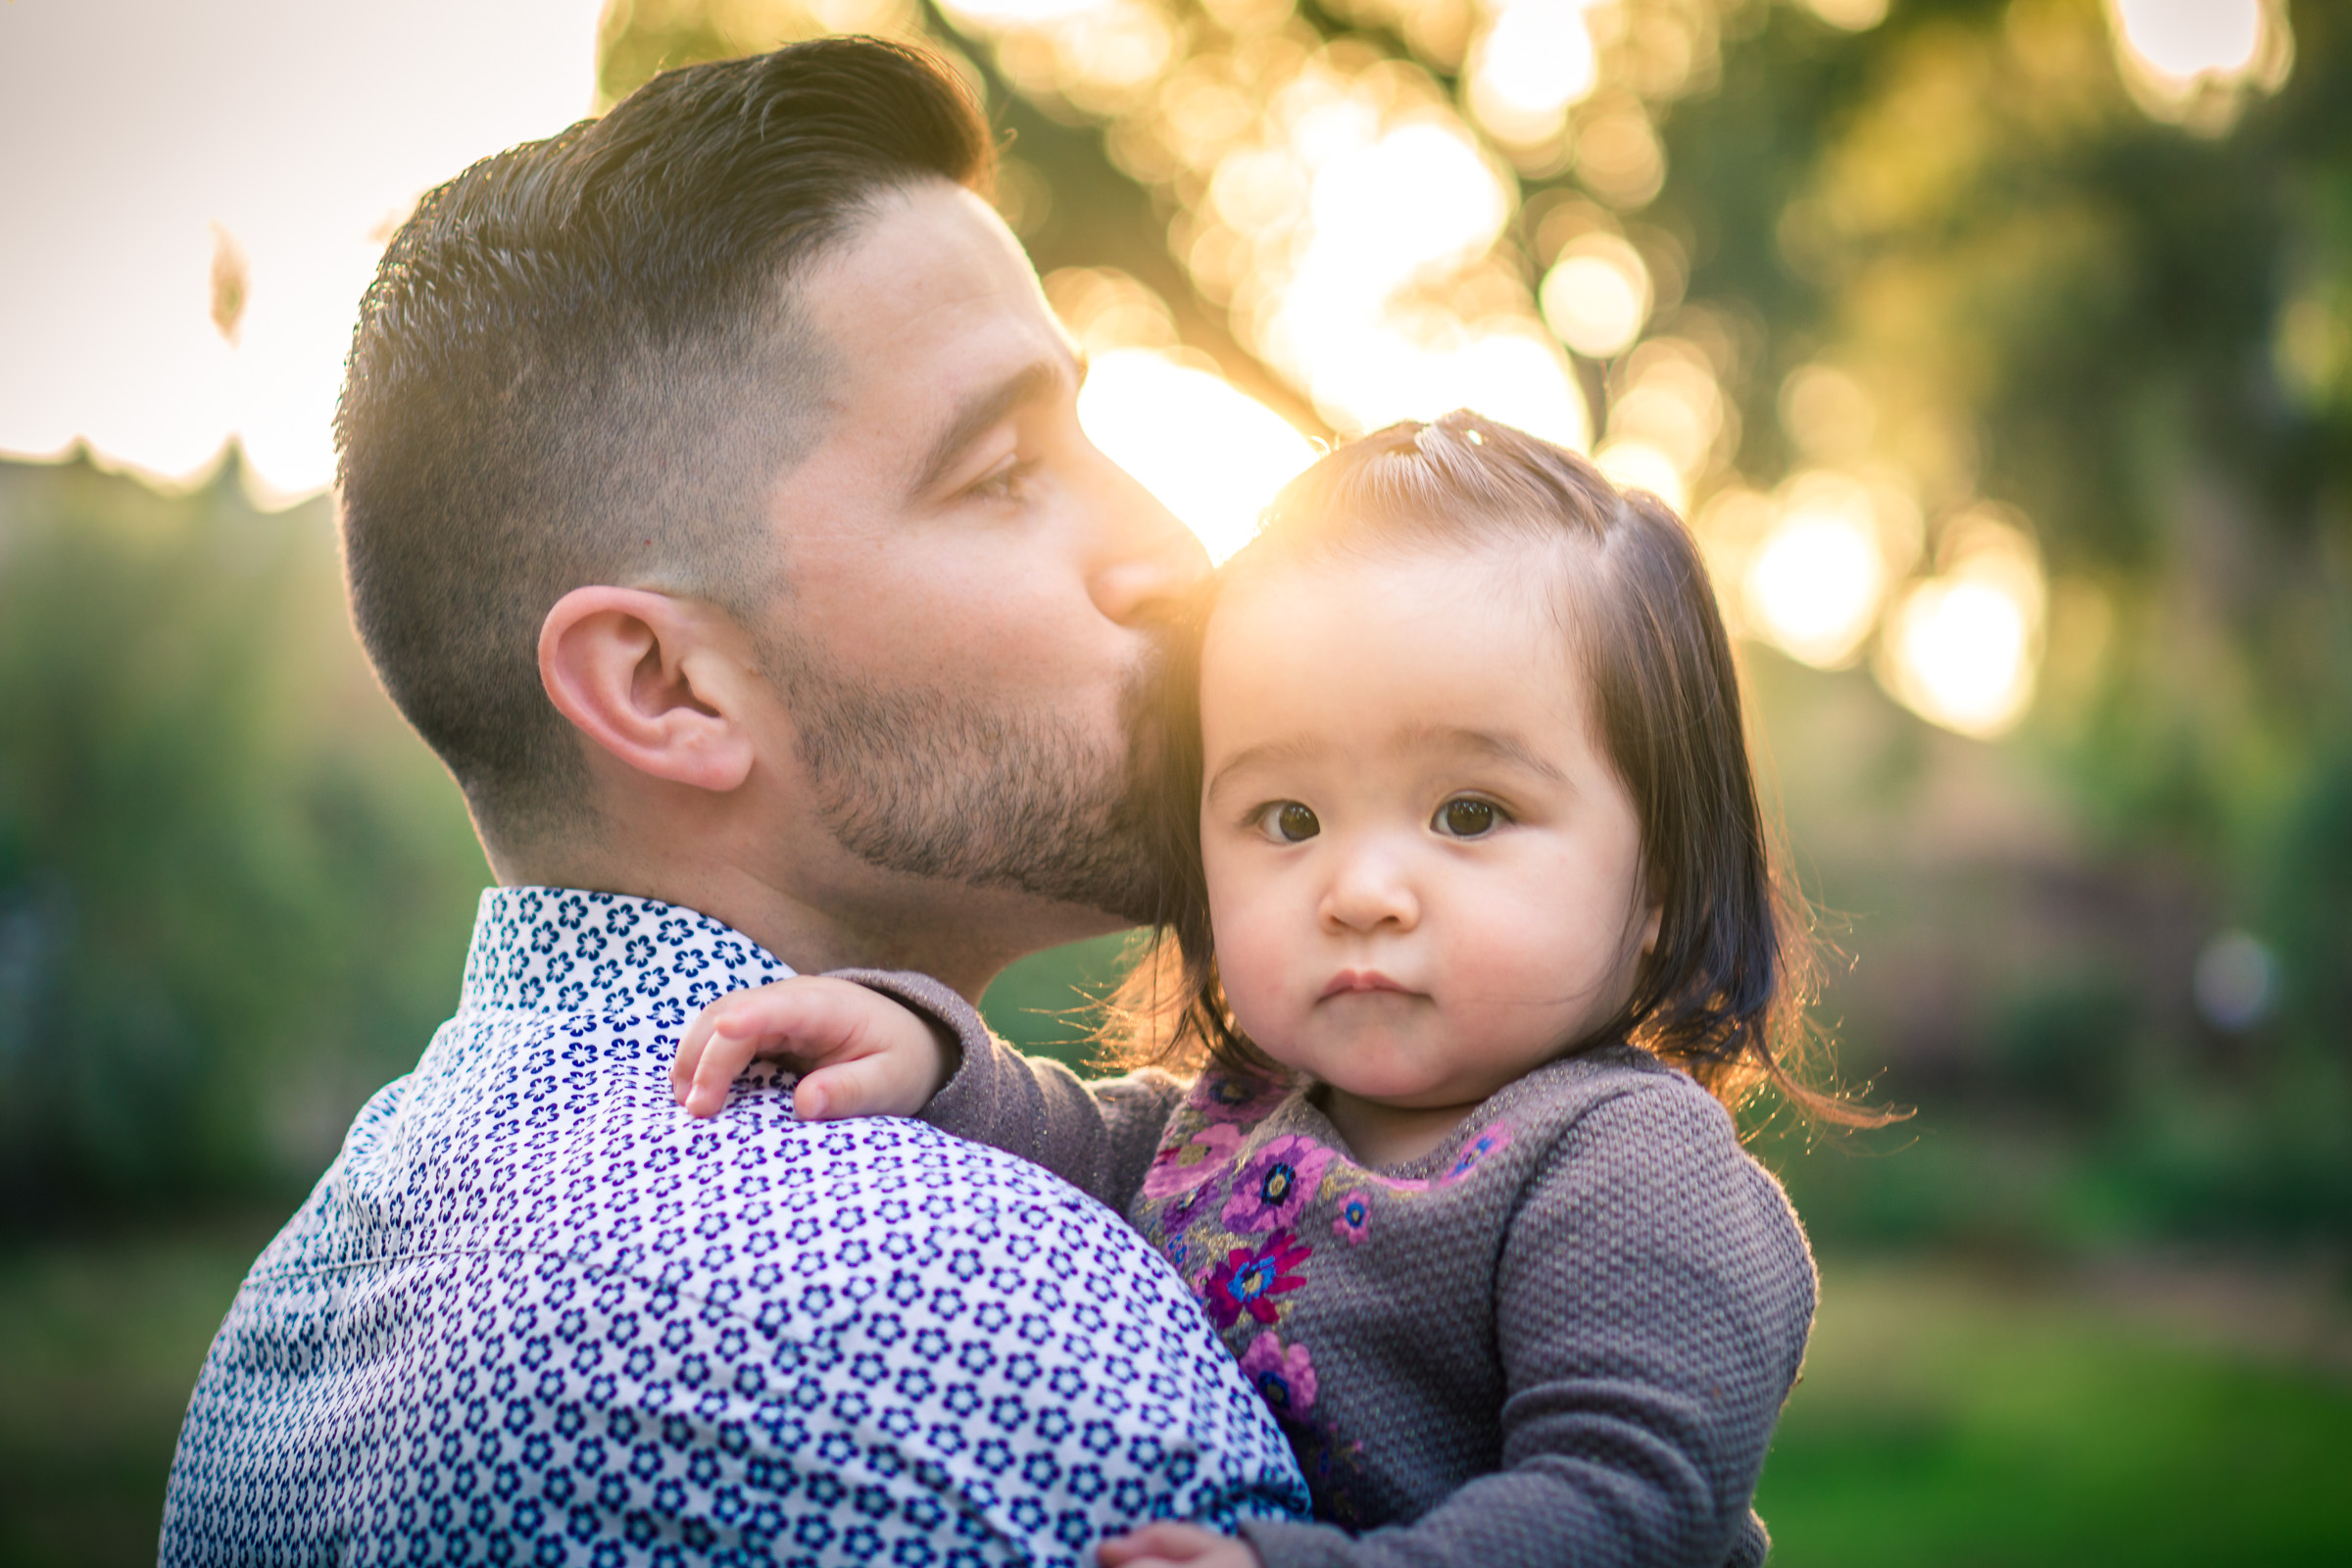 Portrait of a father kissing his cute little baby girl during a family portrait session in fullerton orange county taken by joseph barber photography